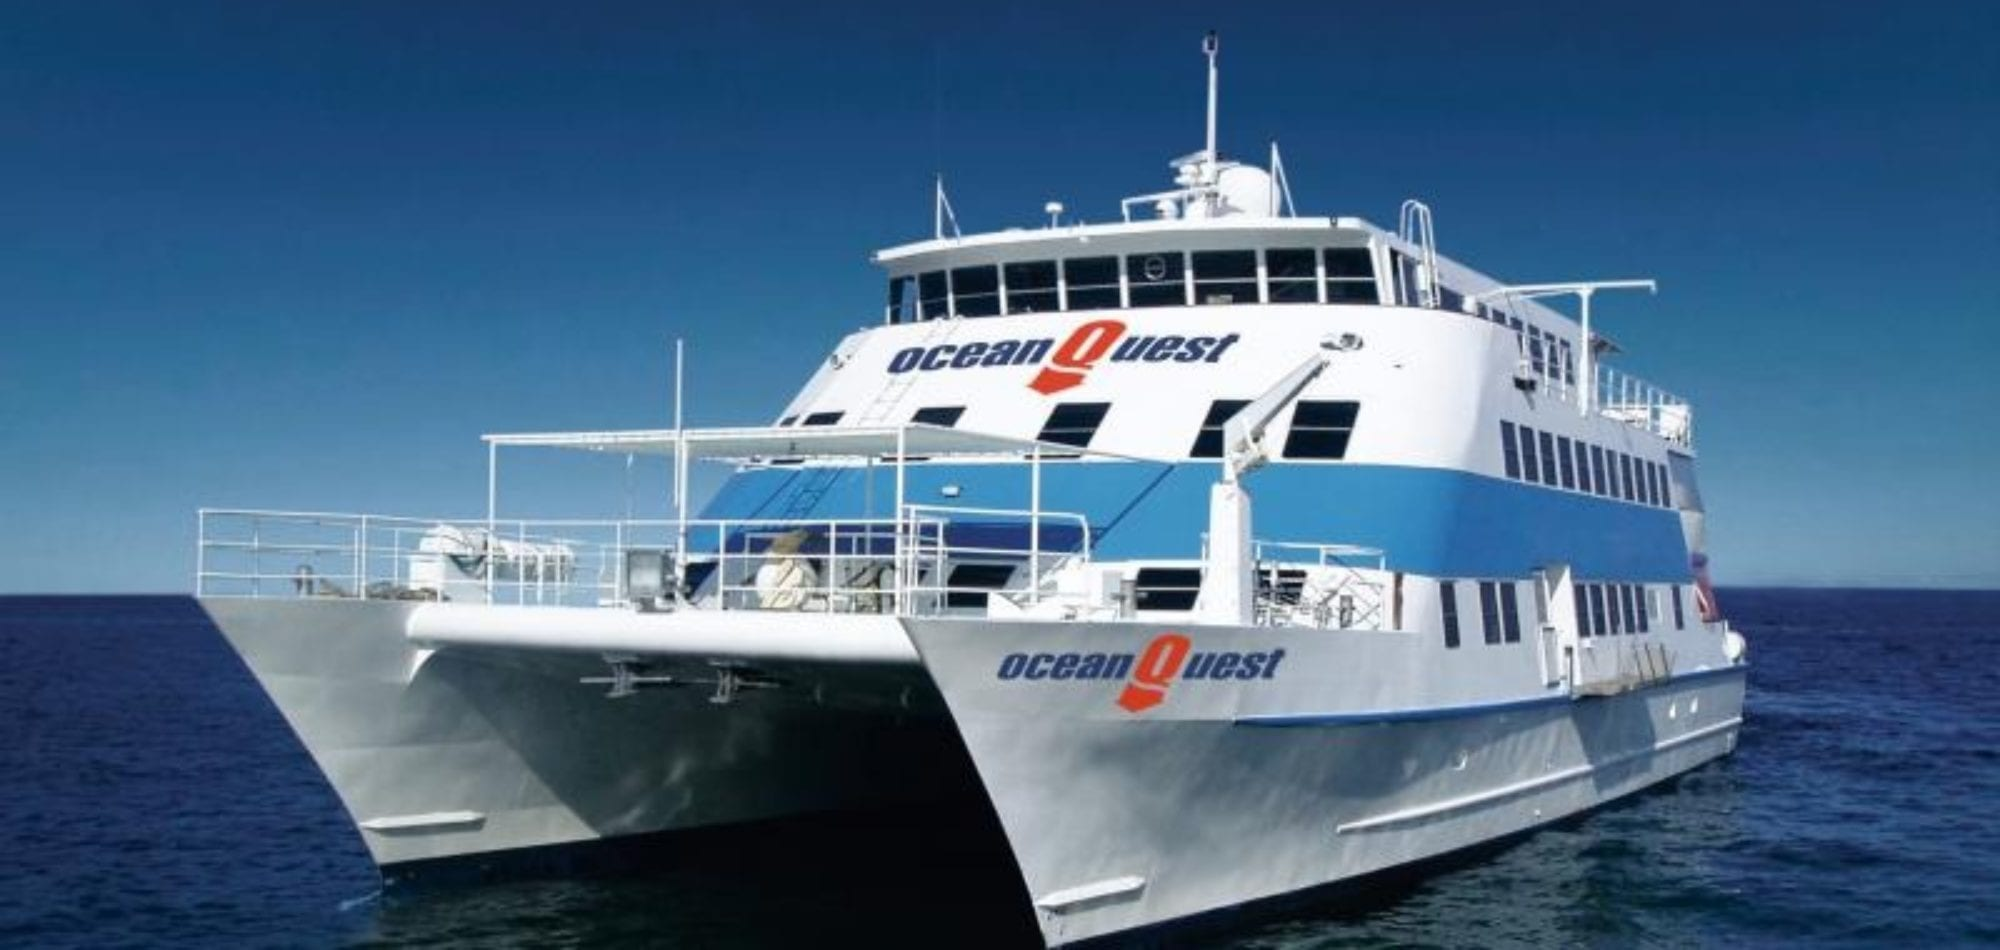 Cairns liveaboard scuba diving - OceanQuest boat